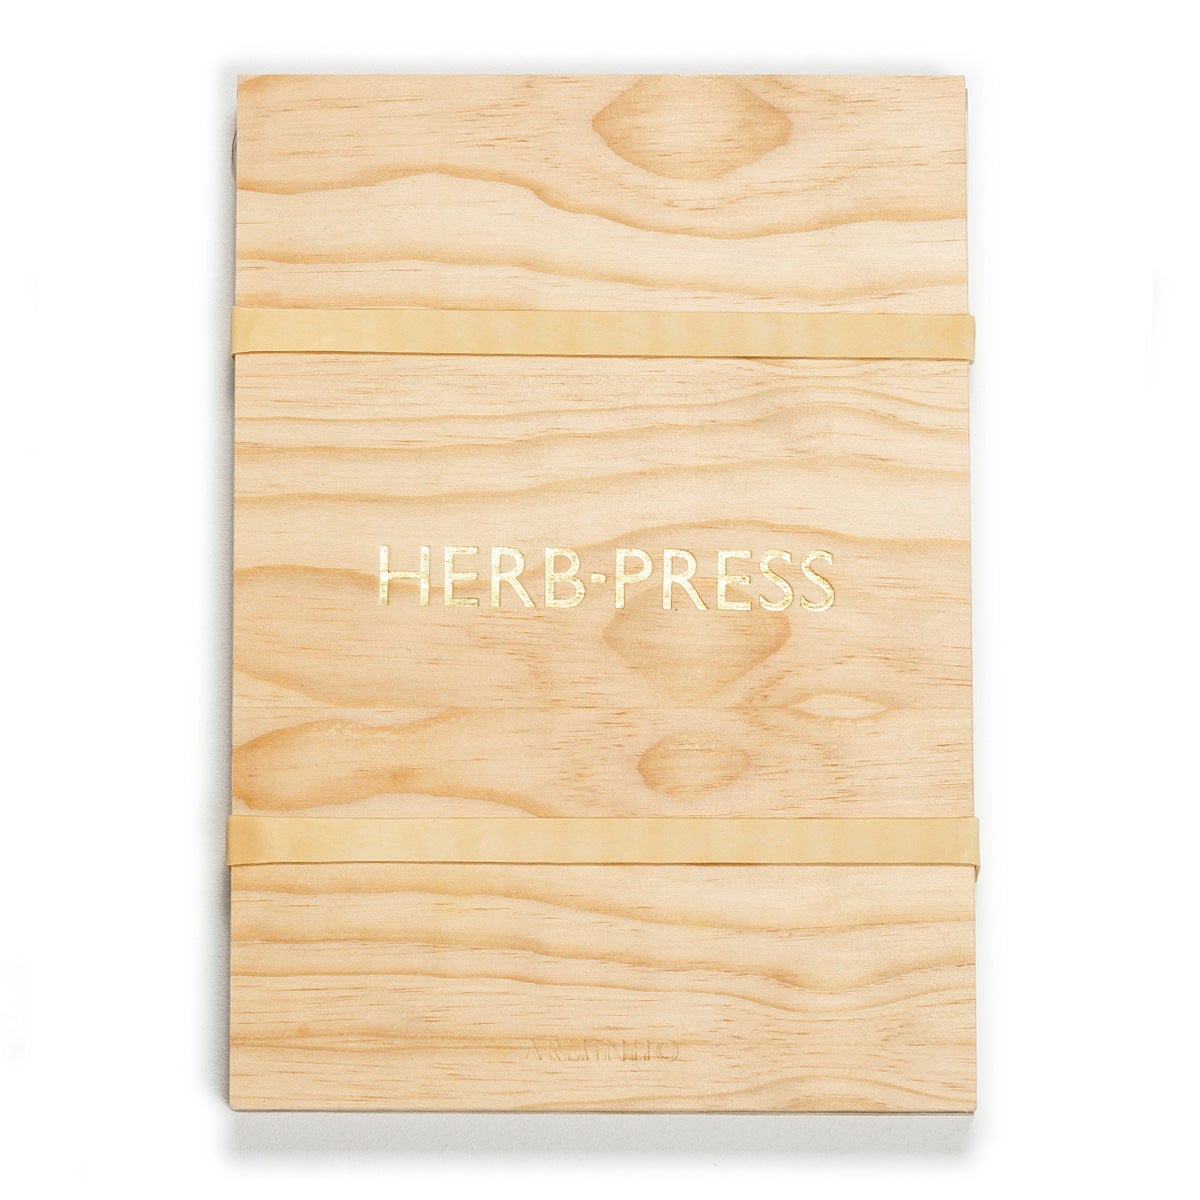 Image of HERB-PRESS - Large Natural